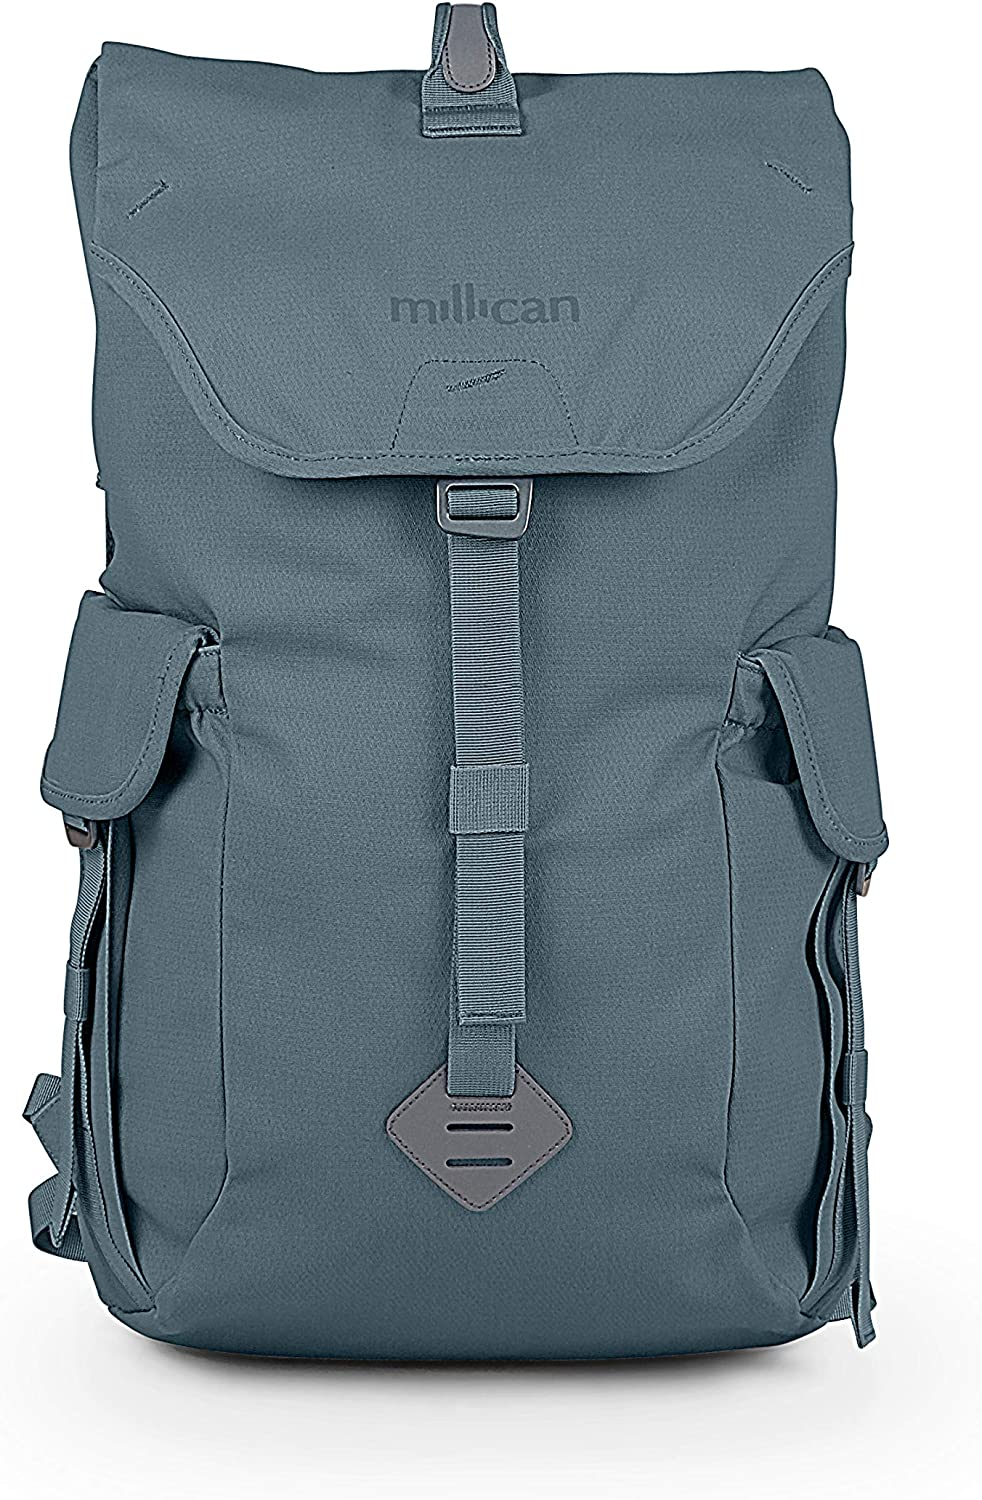 Sales for sale Millican Fraser National products the Tarn 25L Rucksack